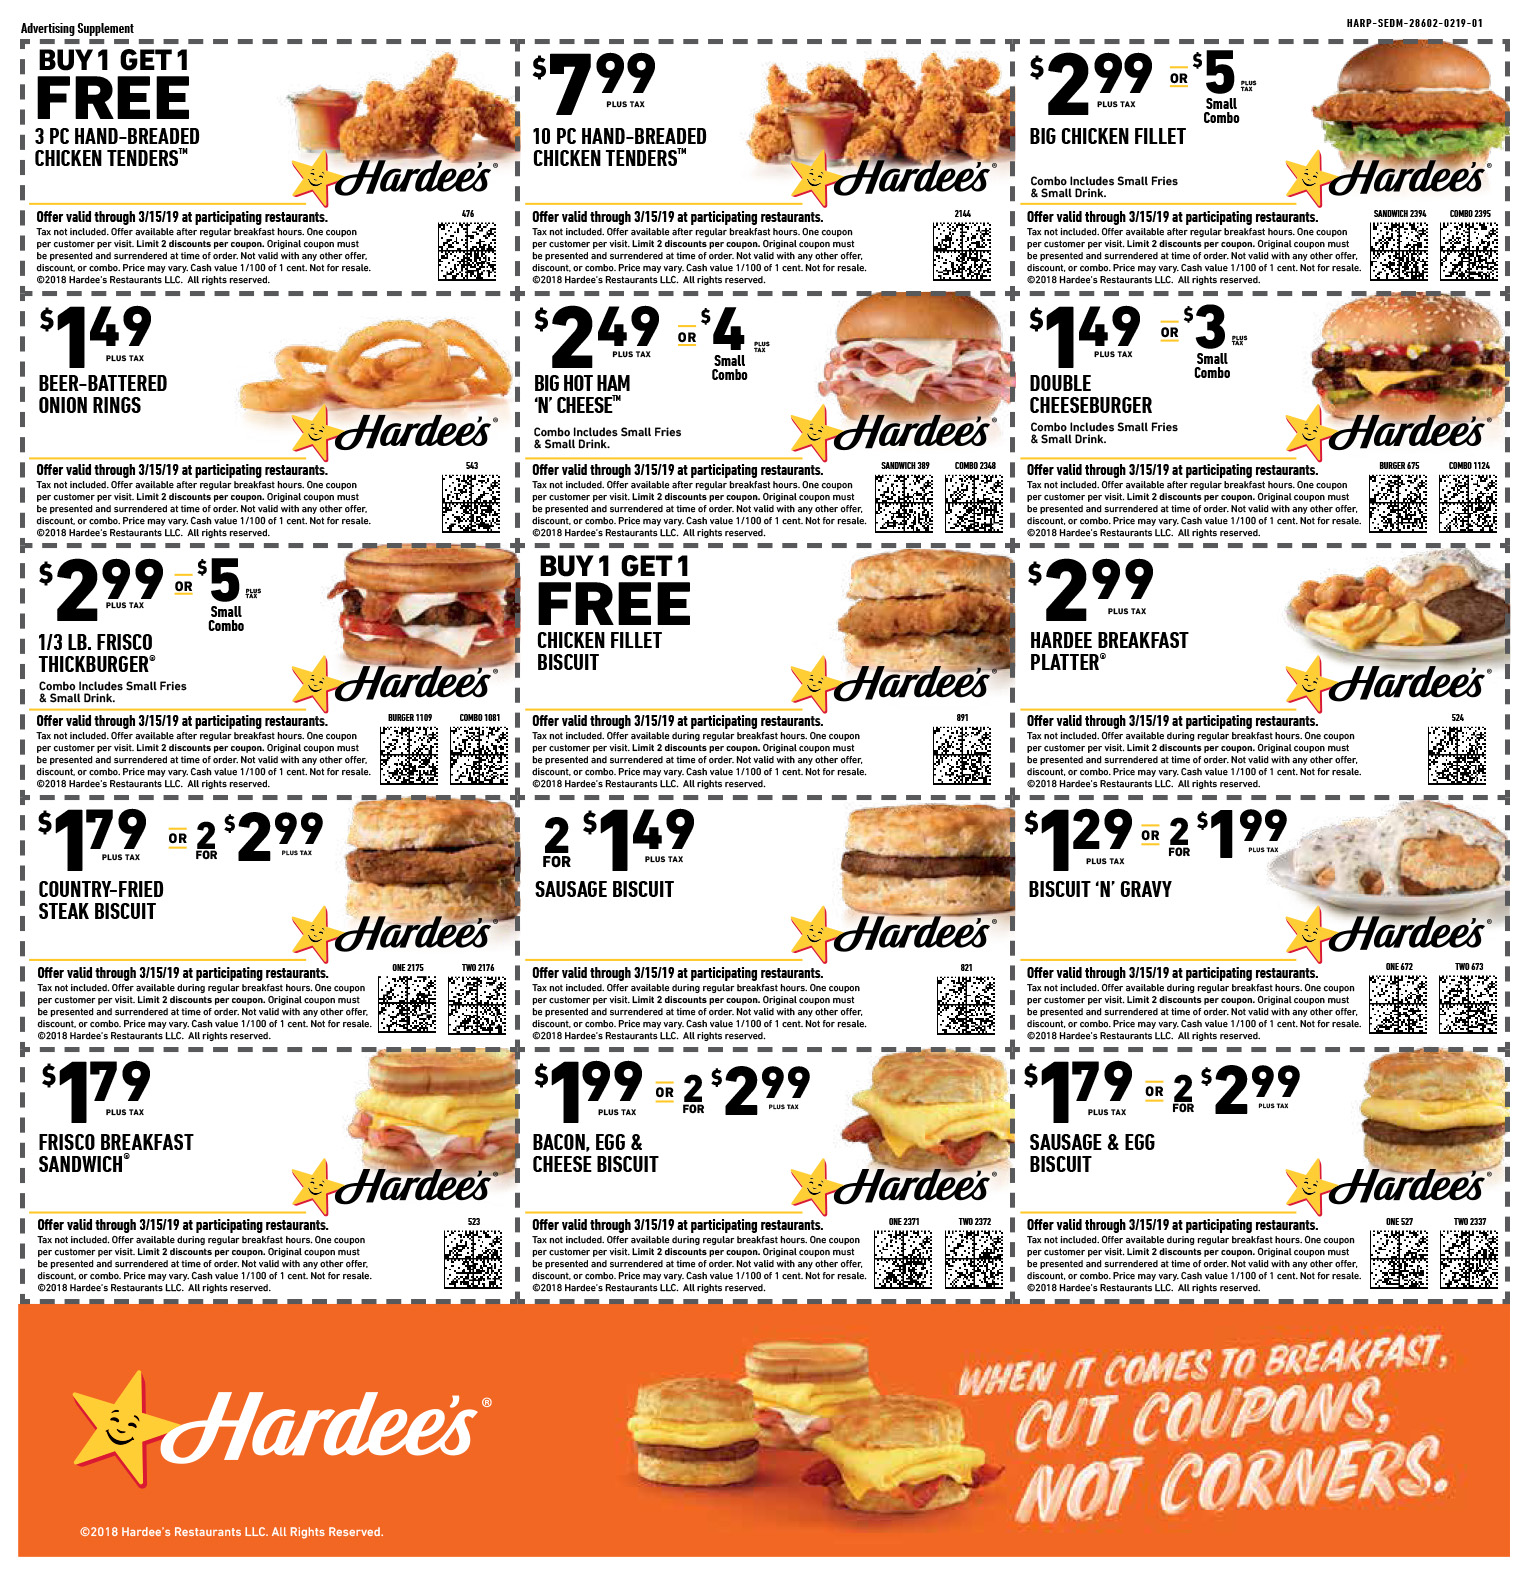 picture regarding Hardee's Printable Coupons named Hardees Discount coupons In direction of Print Equivalent Key phrases Guidelines